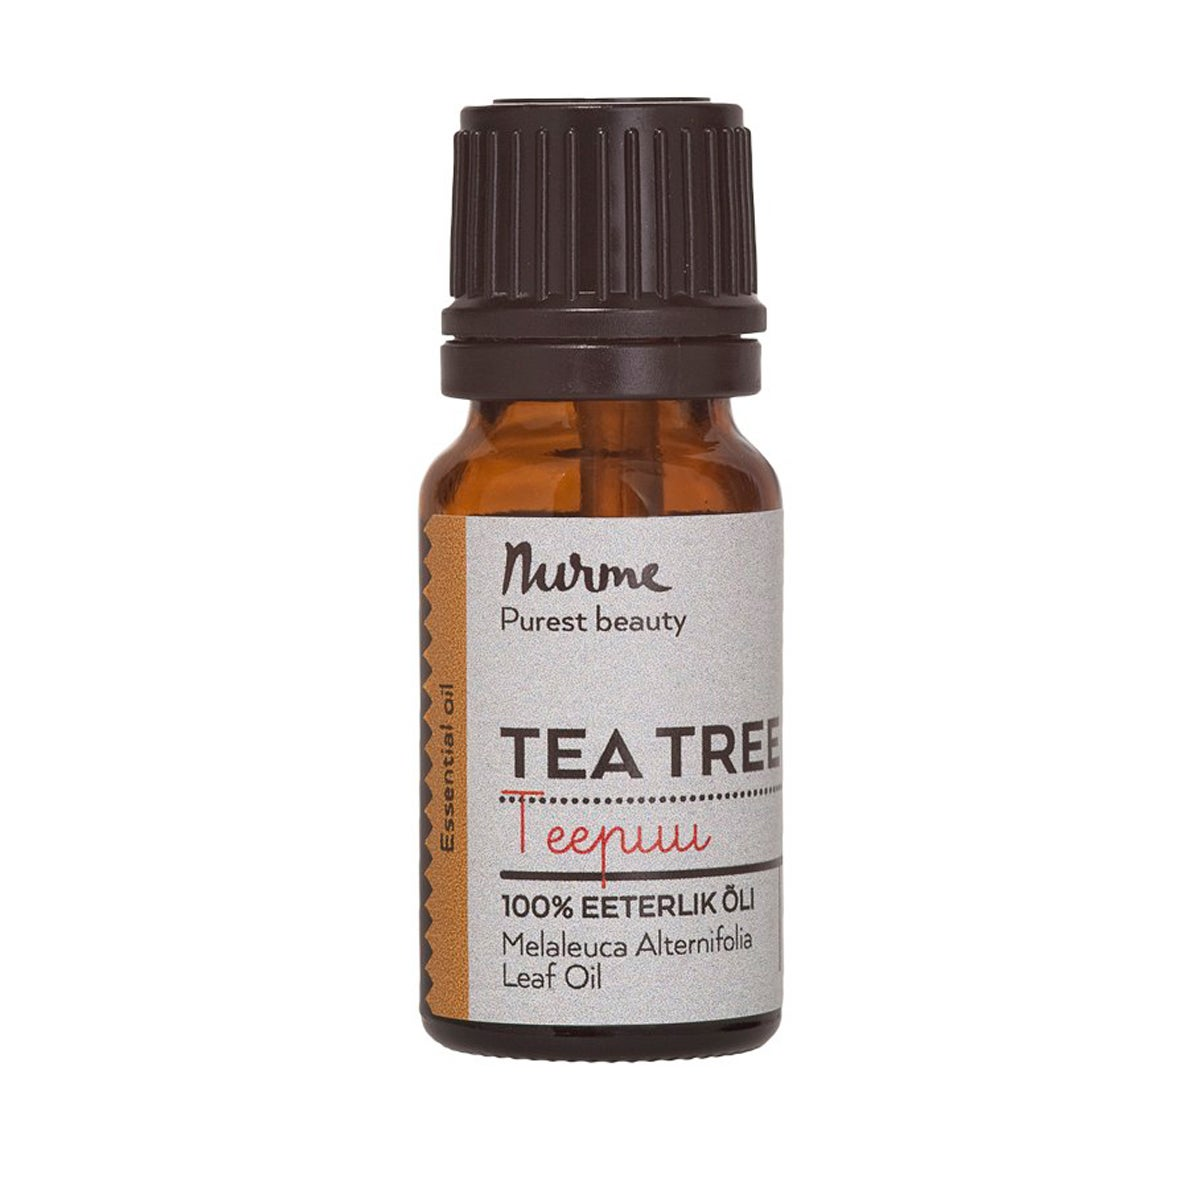 Nurme Tea Tree Essential Oil